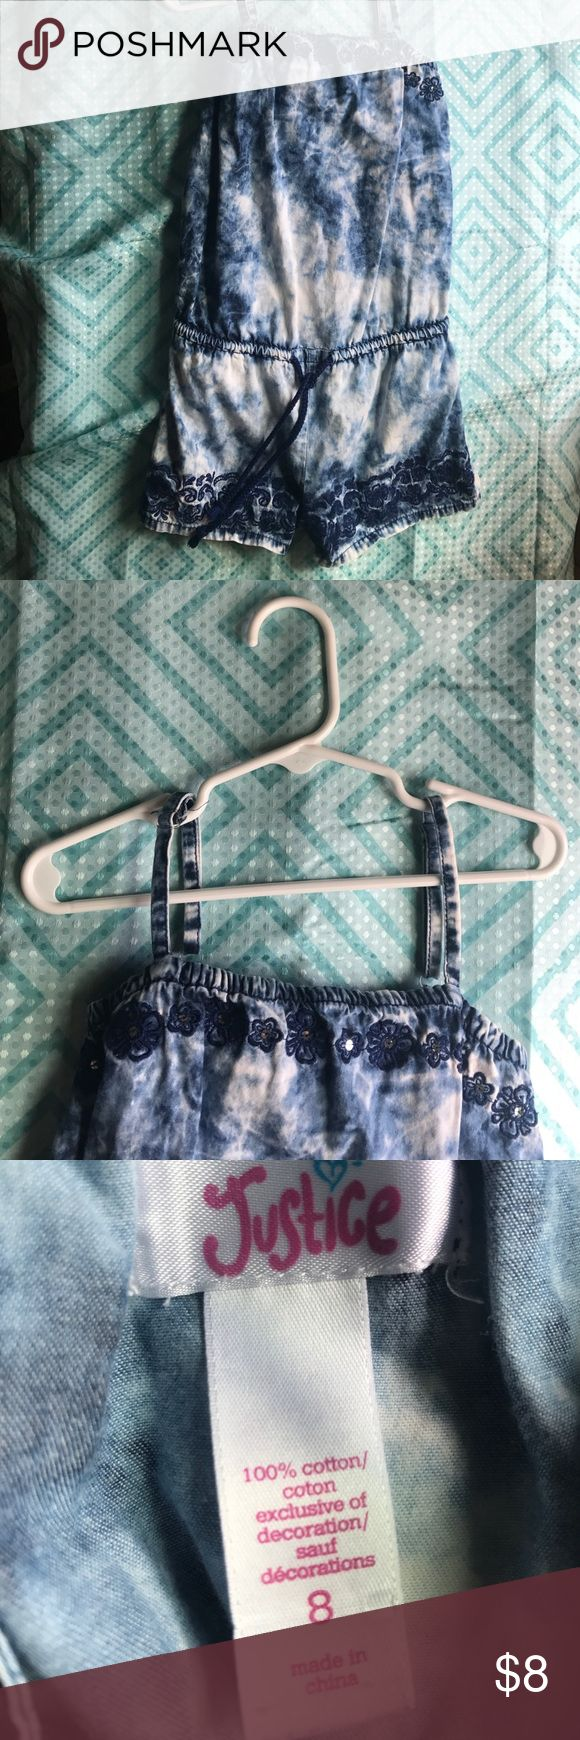 Tye dye blue and white jumper Justice brand, size 7. Spaghetti strap, 100% cotton blue and white tye dye(looks like jean) jumper. Floral design on top of tank and bottom of shorts. Blue drawstring around waist. Bundle for savings or make an offer! BoGo and discounts on sets💙 Justice One Pieces Bodysuits